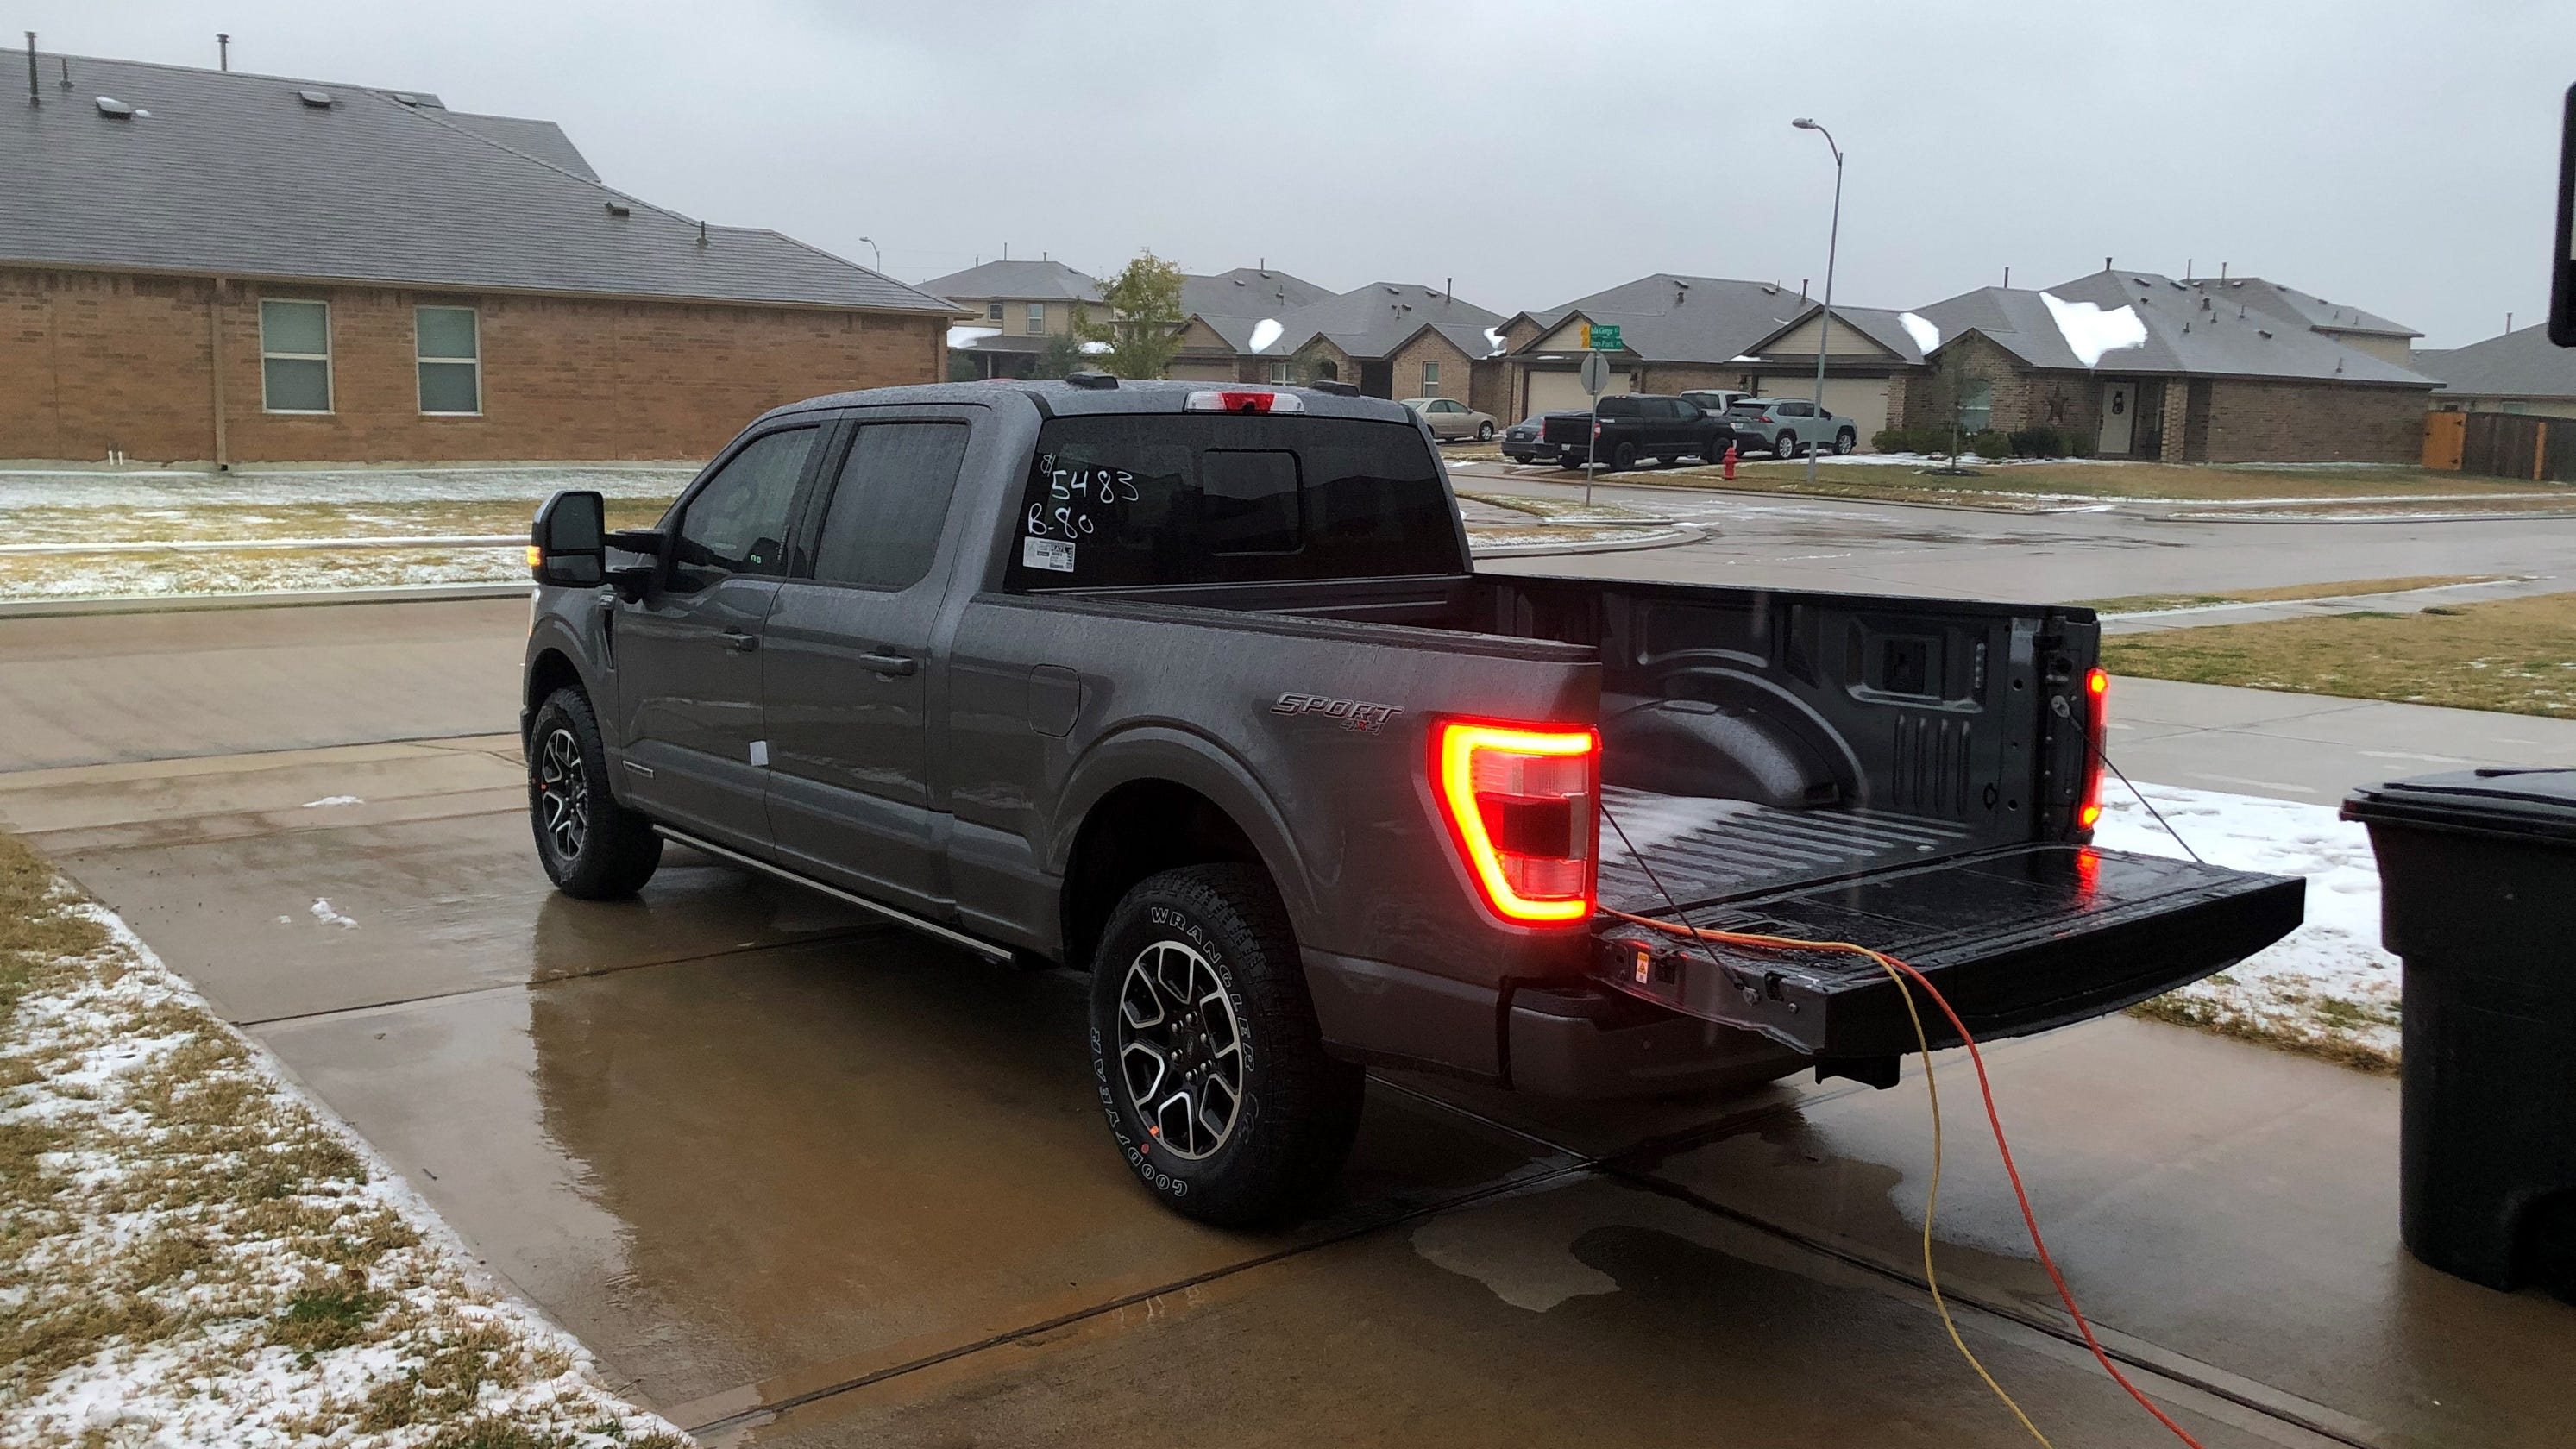 Ford F-150 goes viral after providing generator power to Texas home during blackout